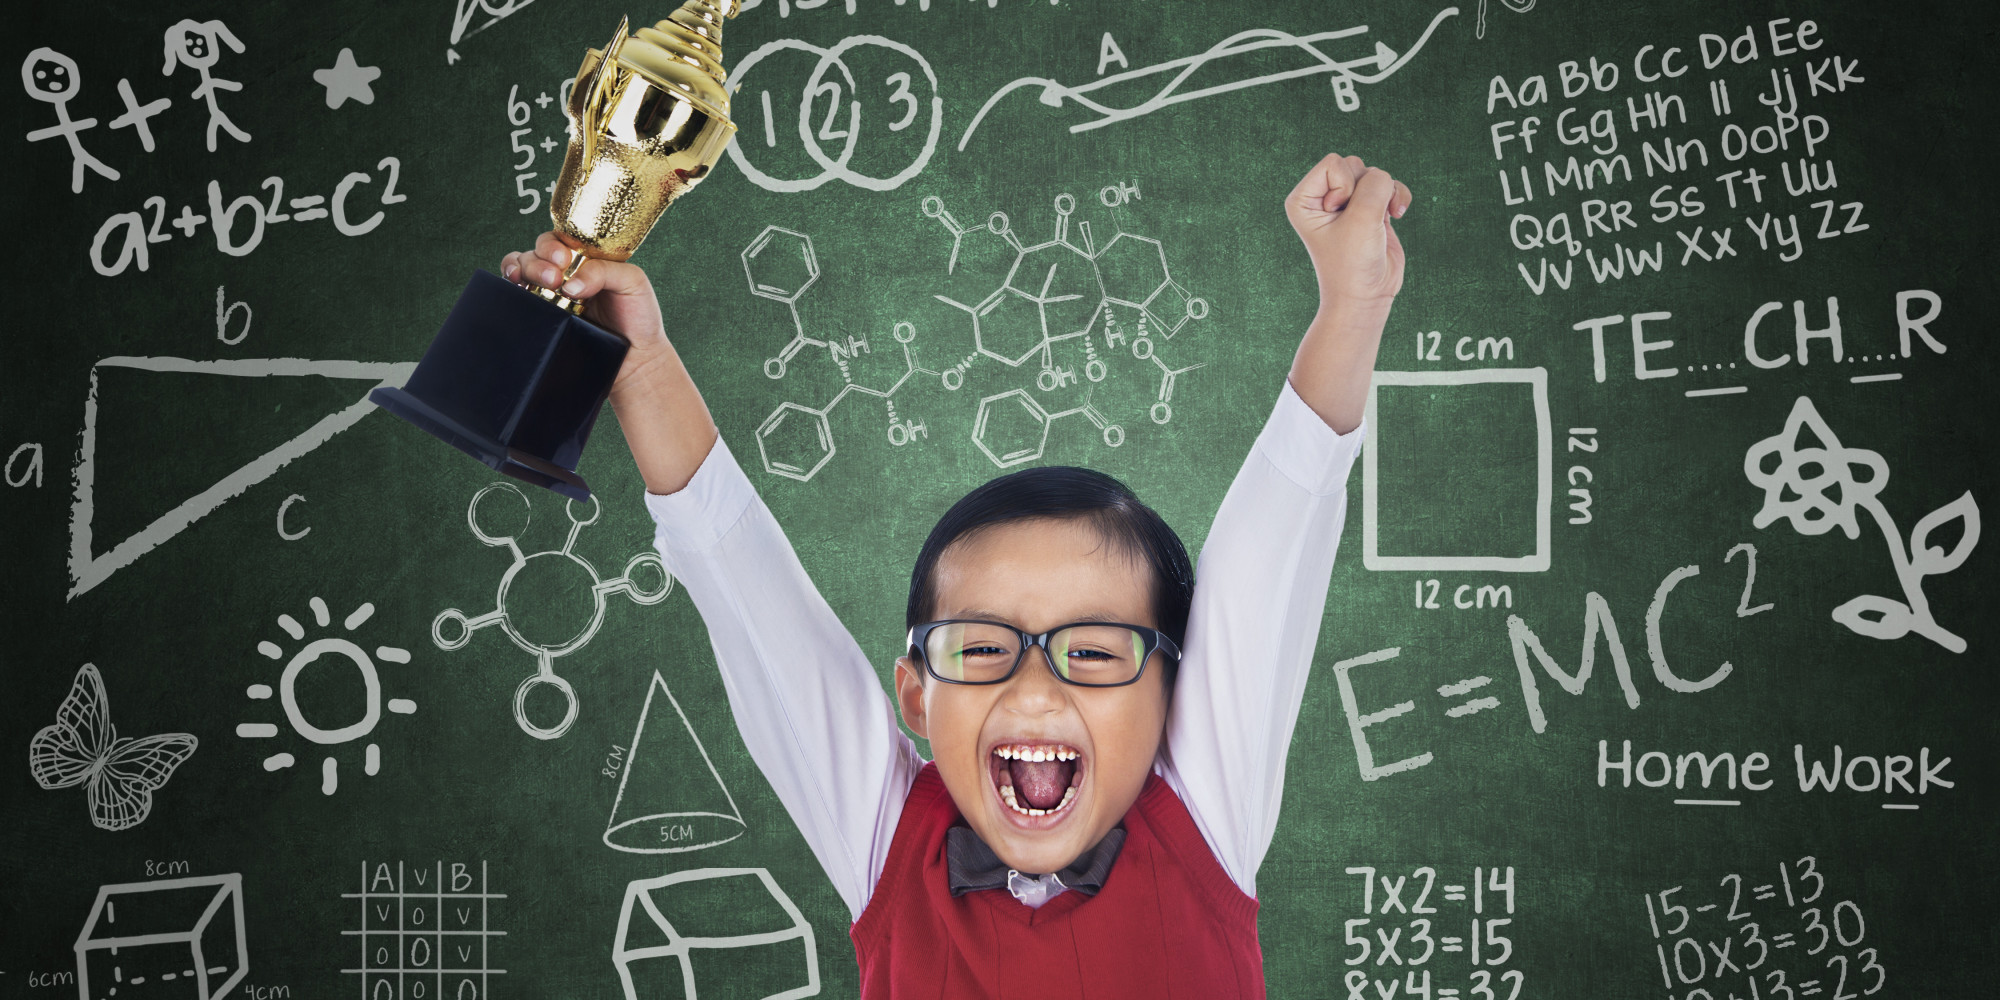 Primary 2 Maths Tuition - No. 1 Maths Tuition in Singapore